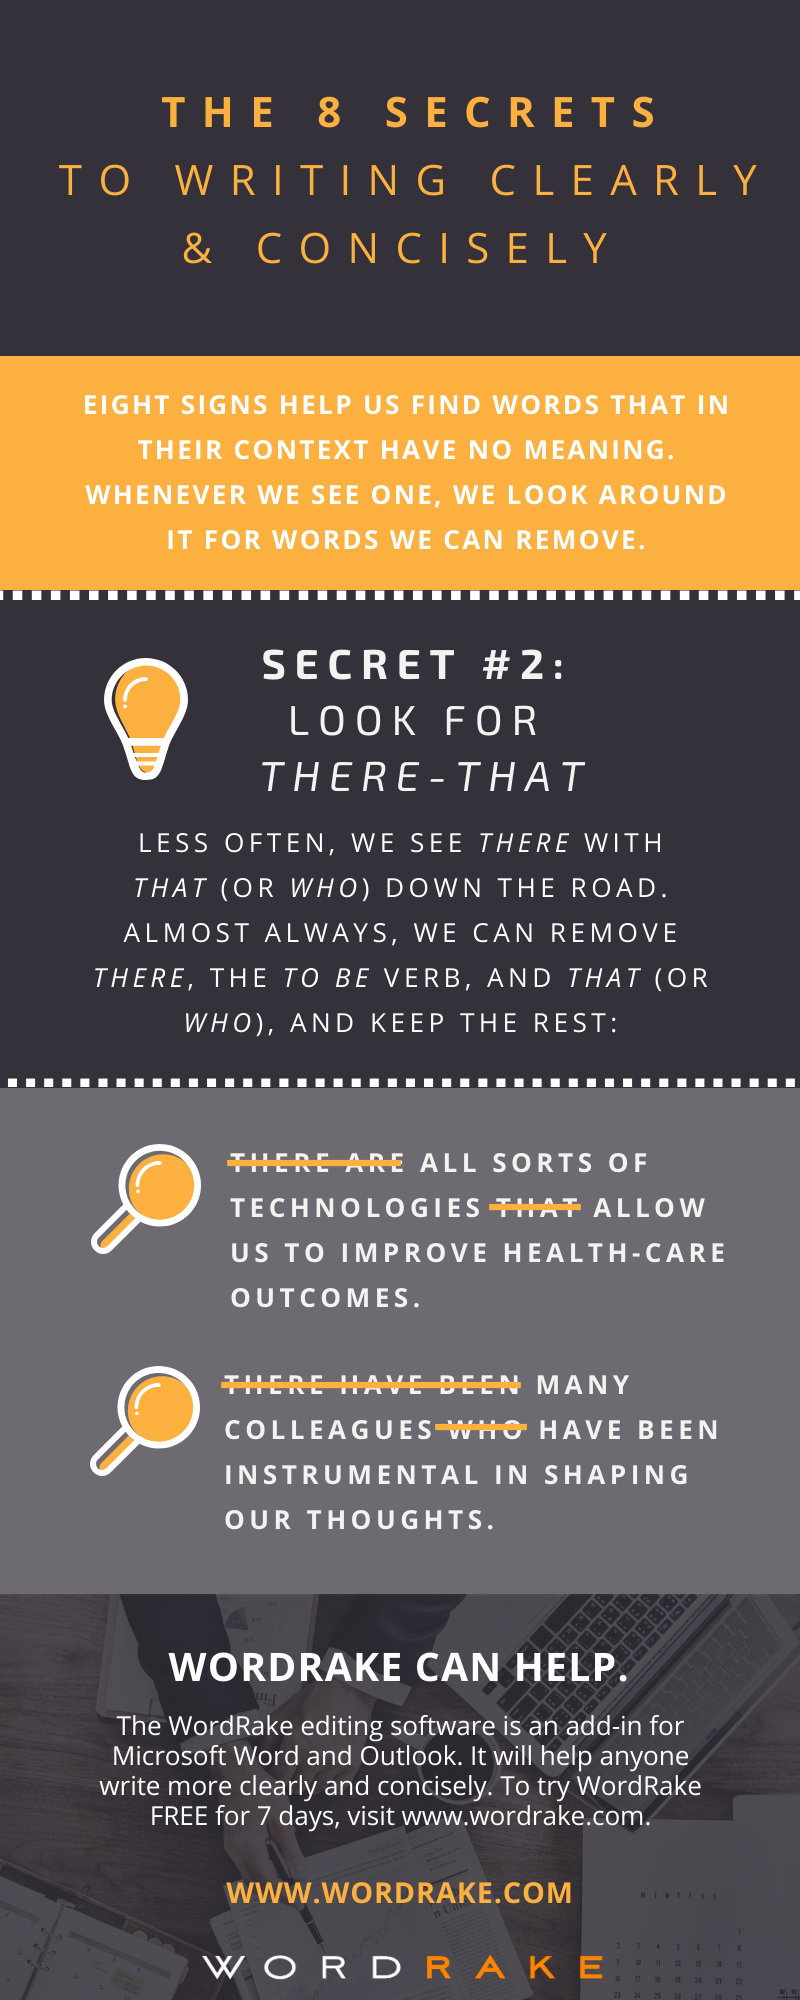 Concise Secret 2 - There-That (Long)